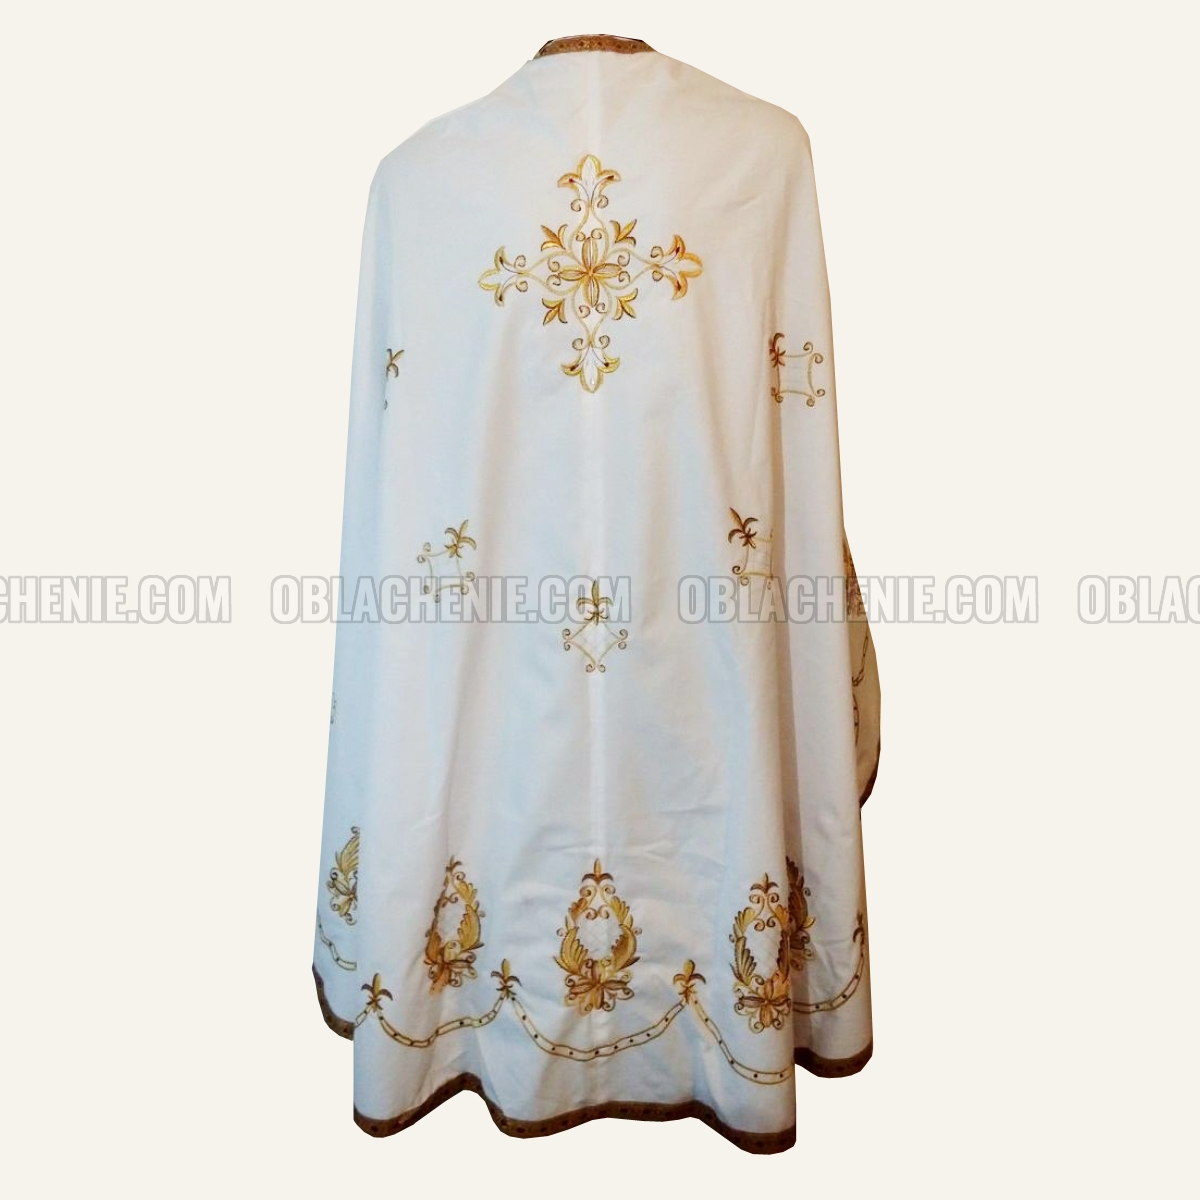 Embroidered priest's vestments 10257